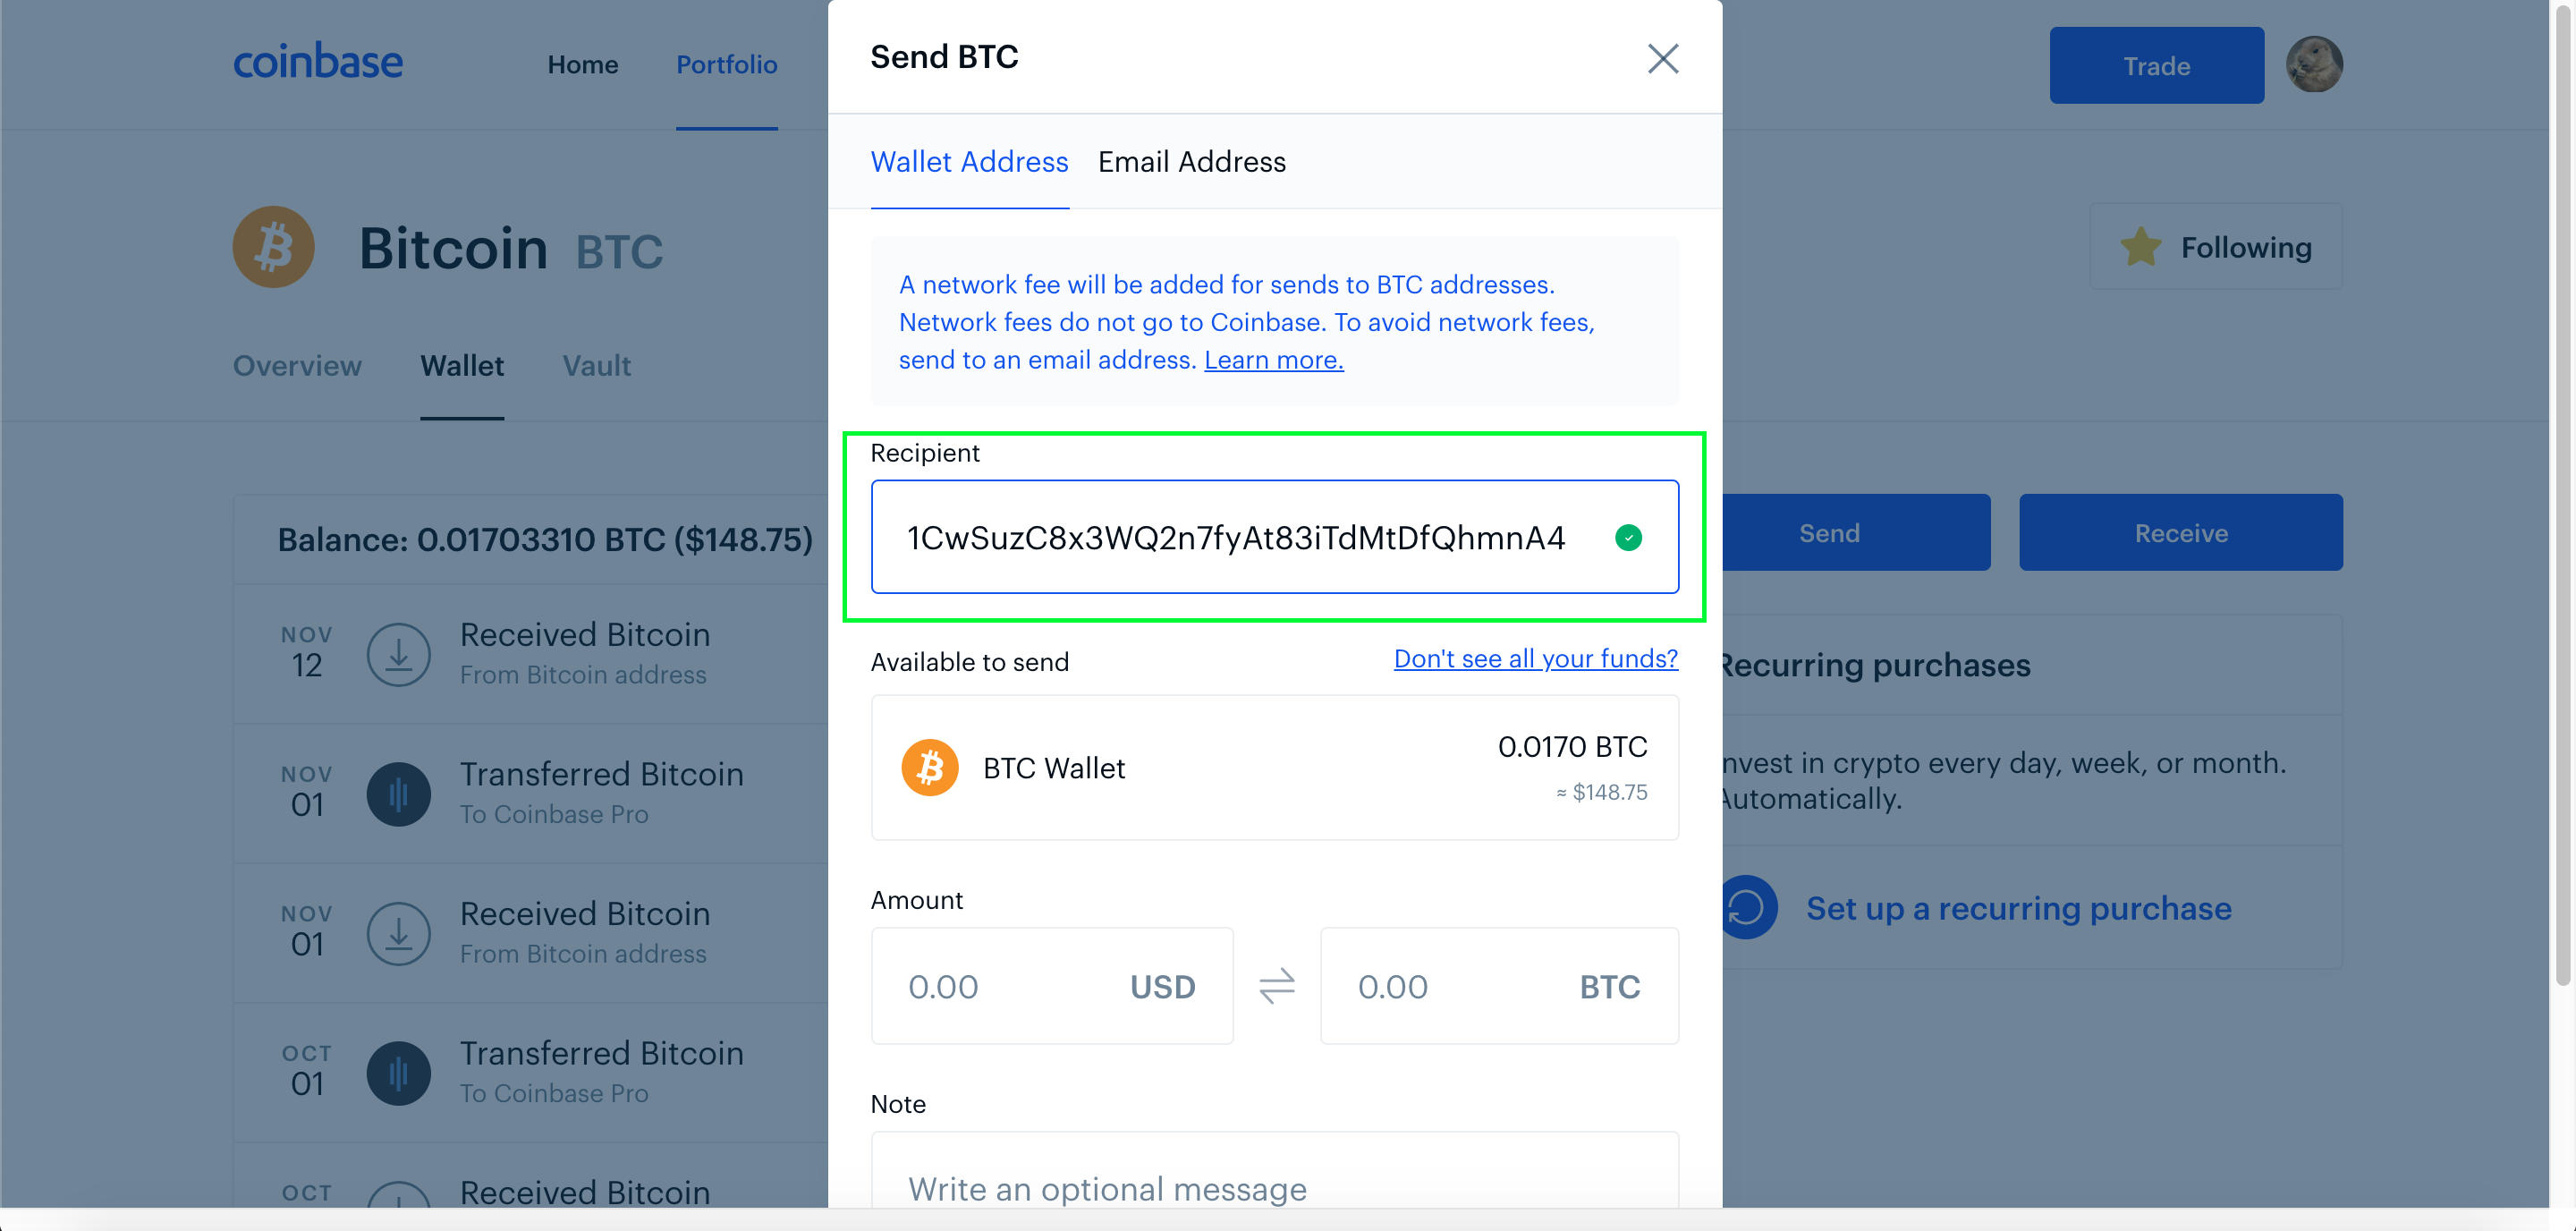 is coinbase a bitcoin wallet